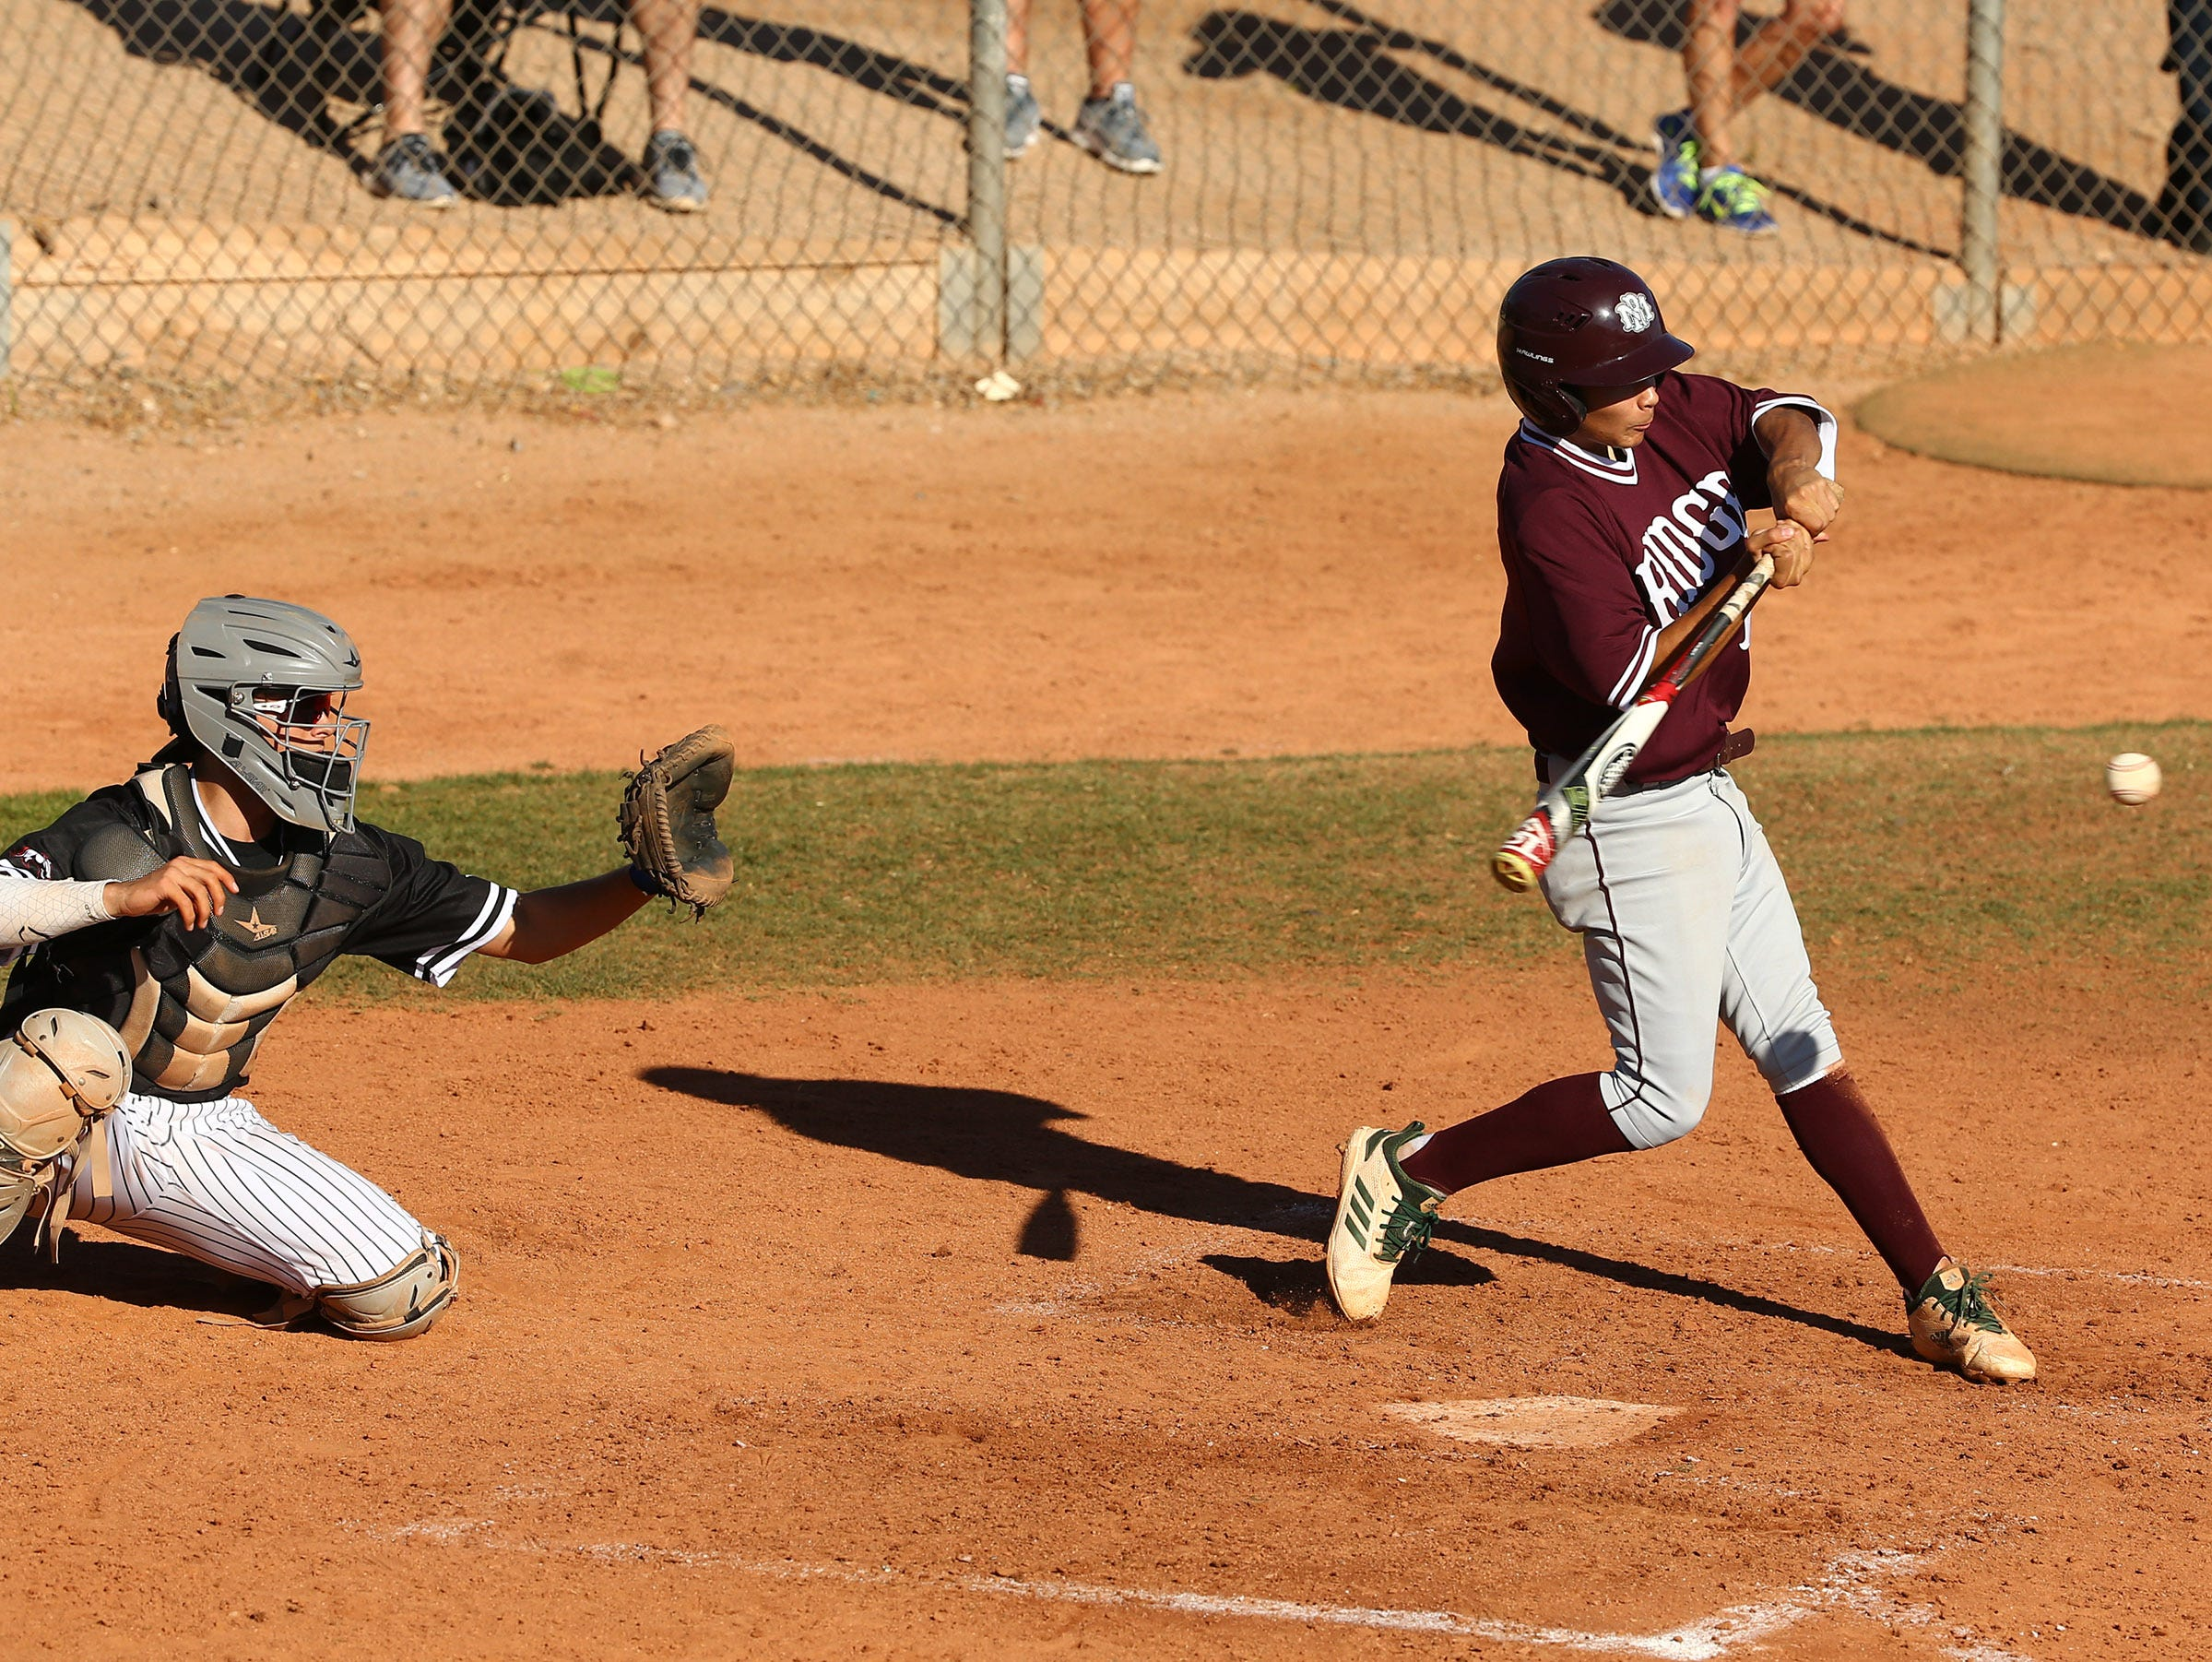 Mountain Ridge High's AJ Singer (17) drives in two runs against Brophy Prep in the third inning on Apr. 24, 2019 in Phoenix, Ariz